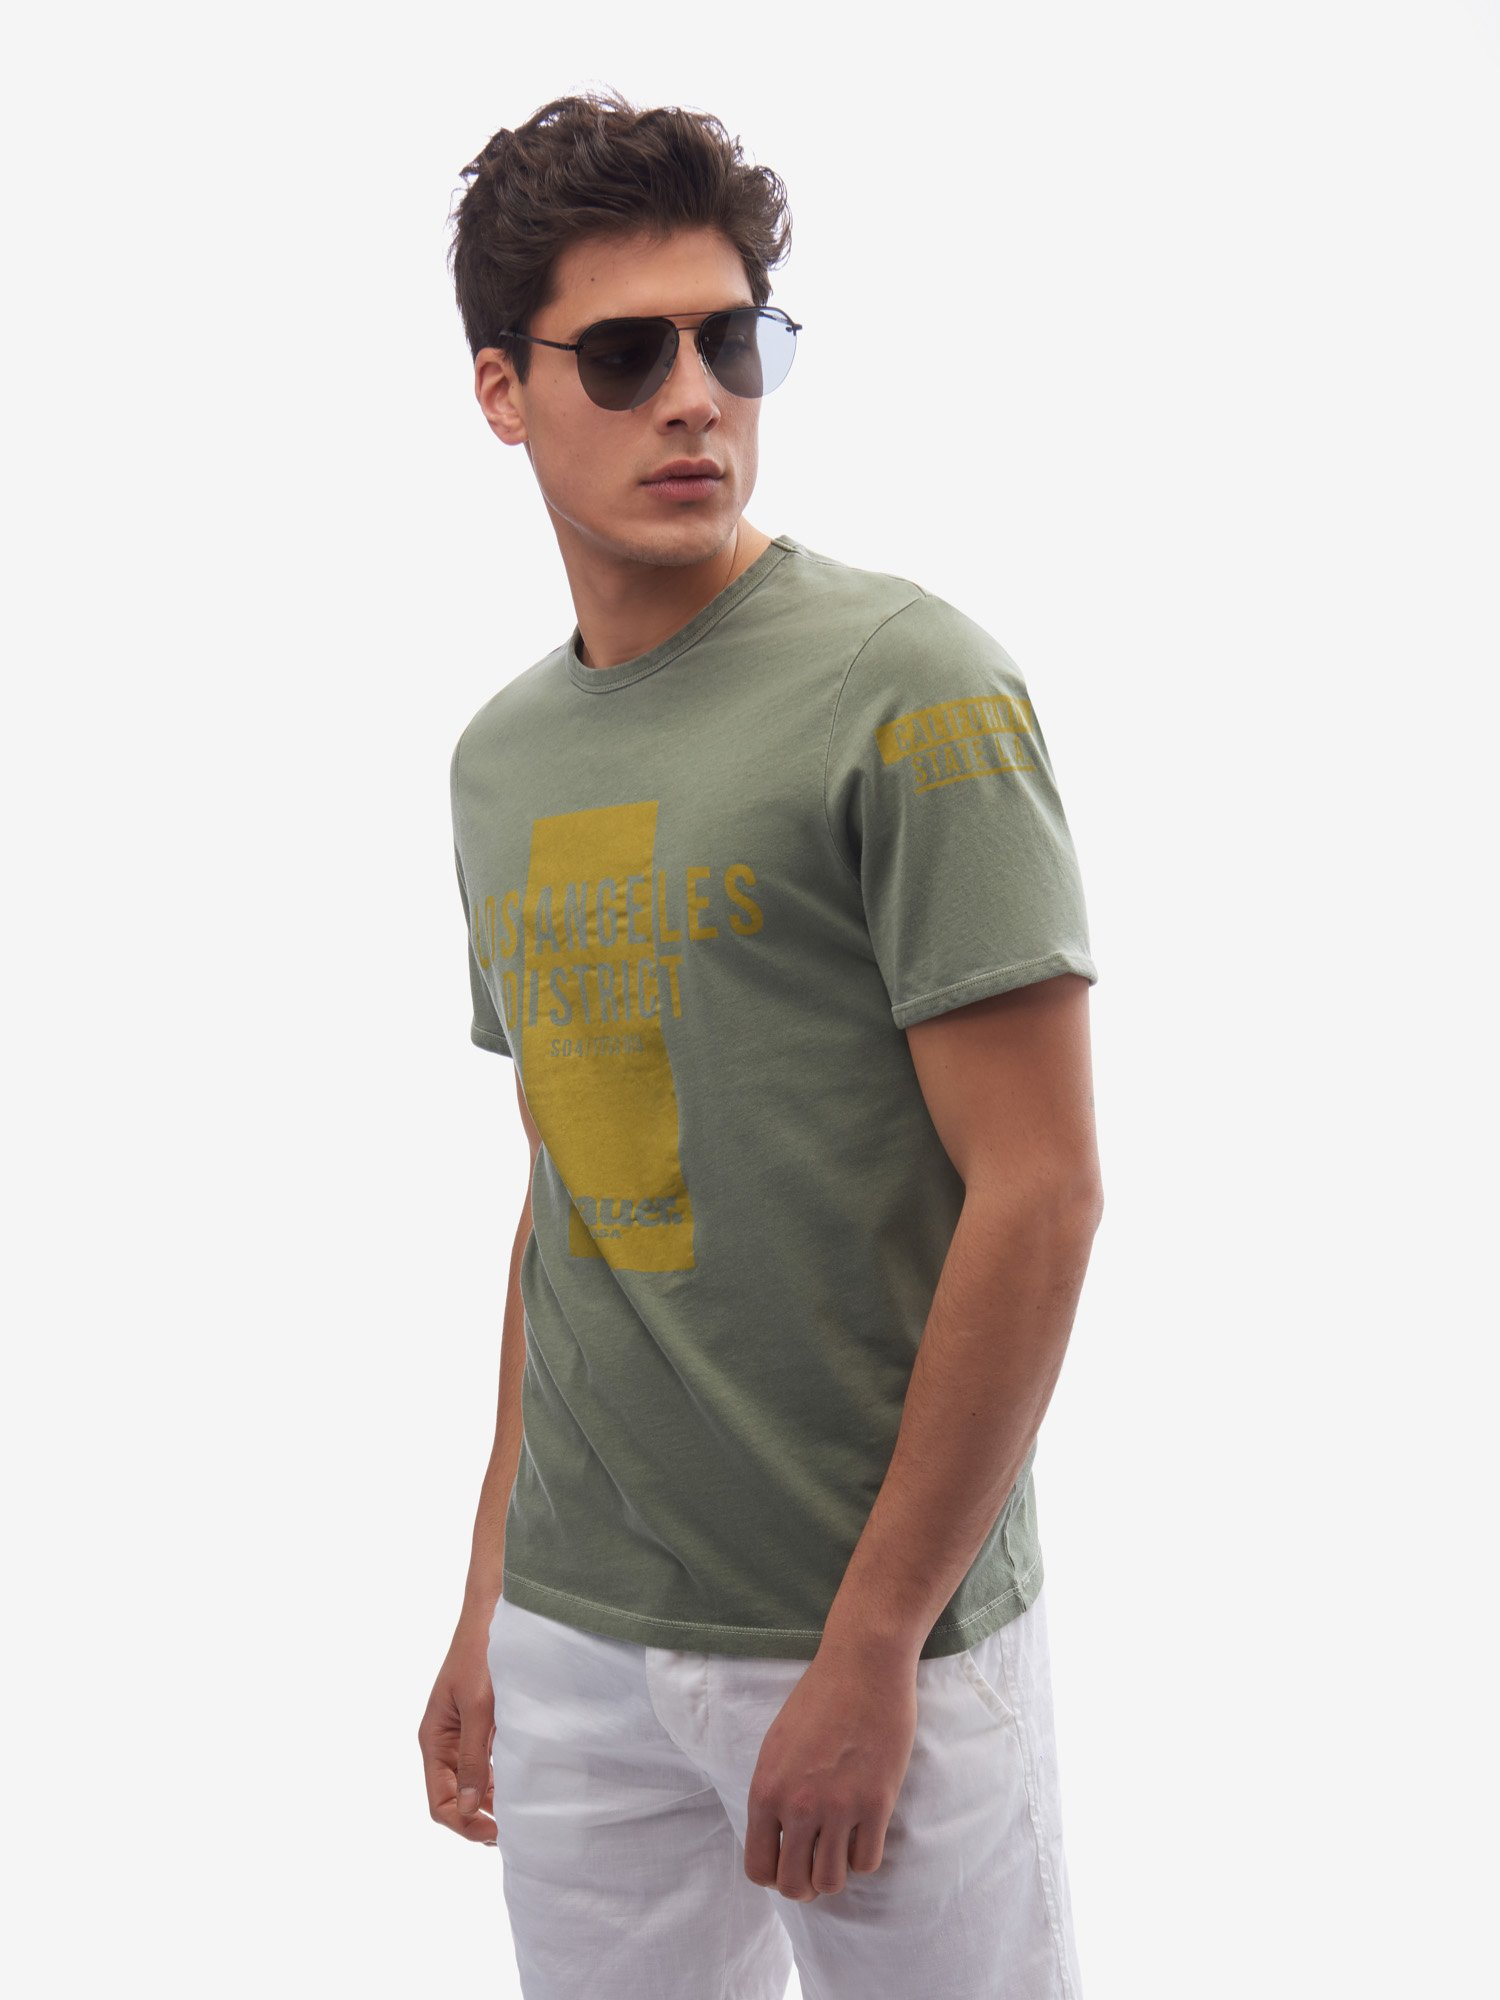 Blauer - CAMISETA LOS ÁNGELES DISTRICT - Olive Green - Blauer